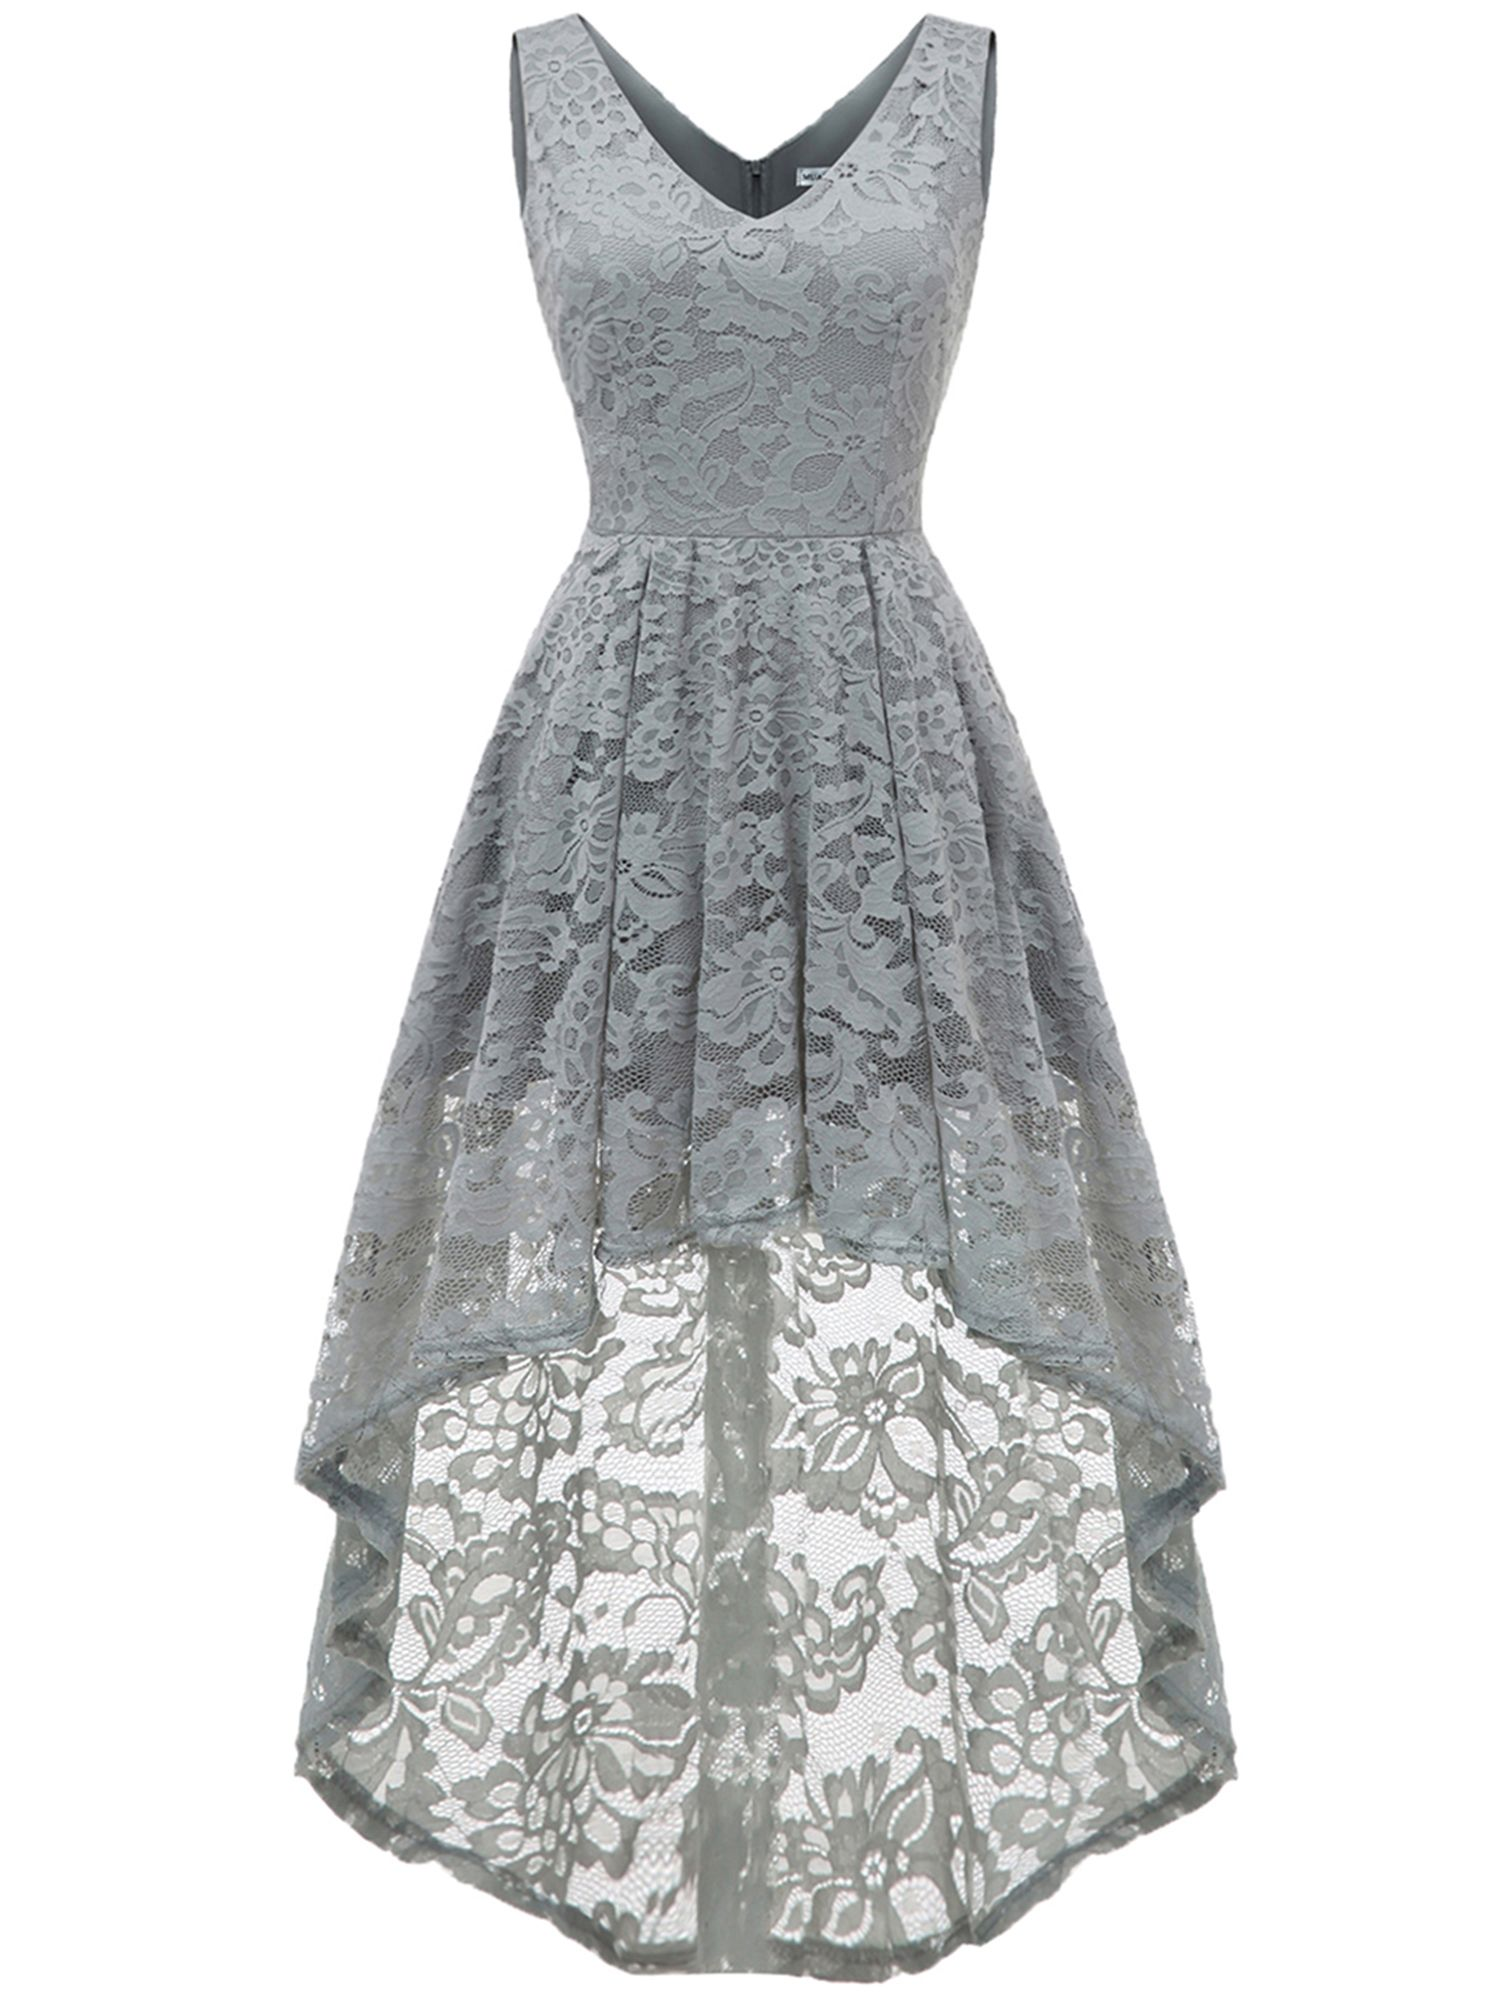 Market In The Box Market In The Box Women Lace Dress Hi Lo Maxi Formal Cocktail Wedding Party Dress Walmart Com Cocktail Dress Party Women Lace Dress Lace Formal Dress [ 2000 x 1500 Pixel ]